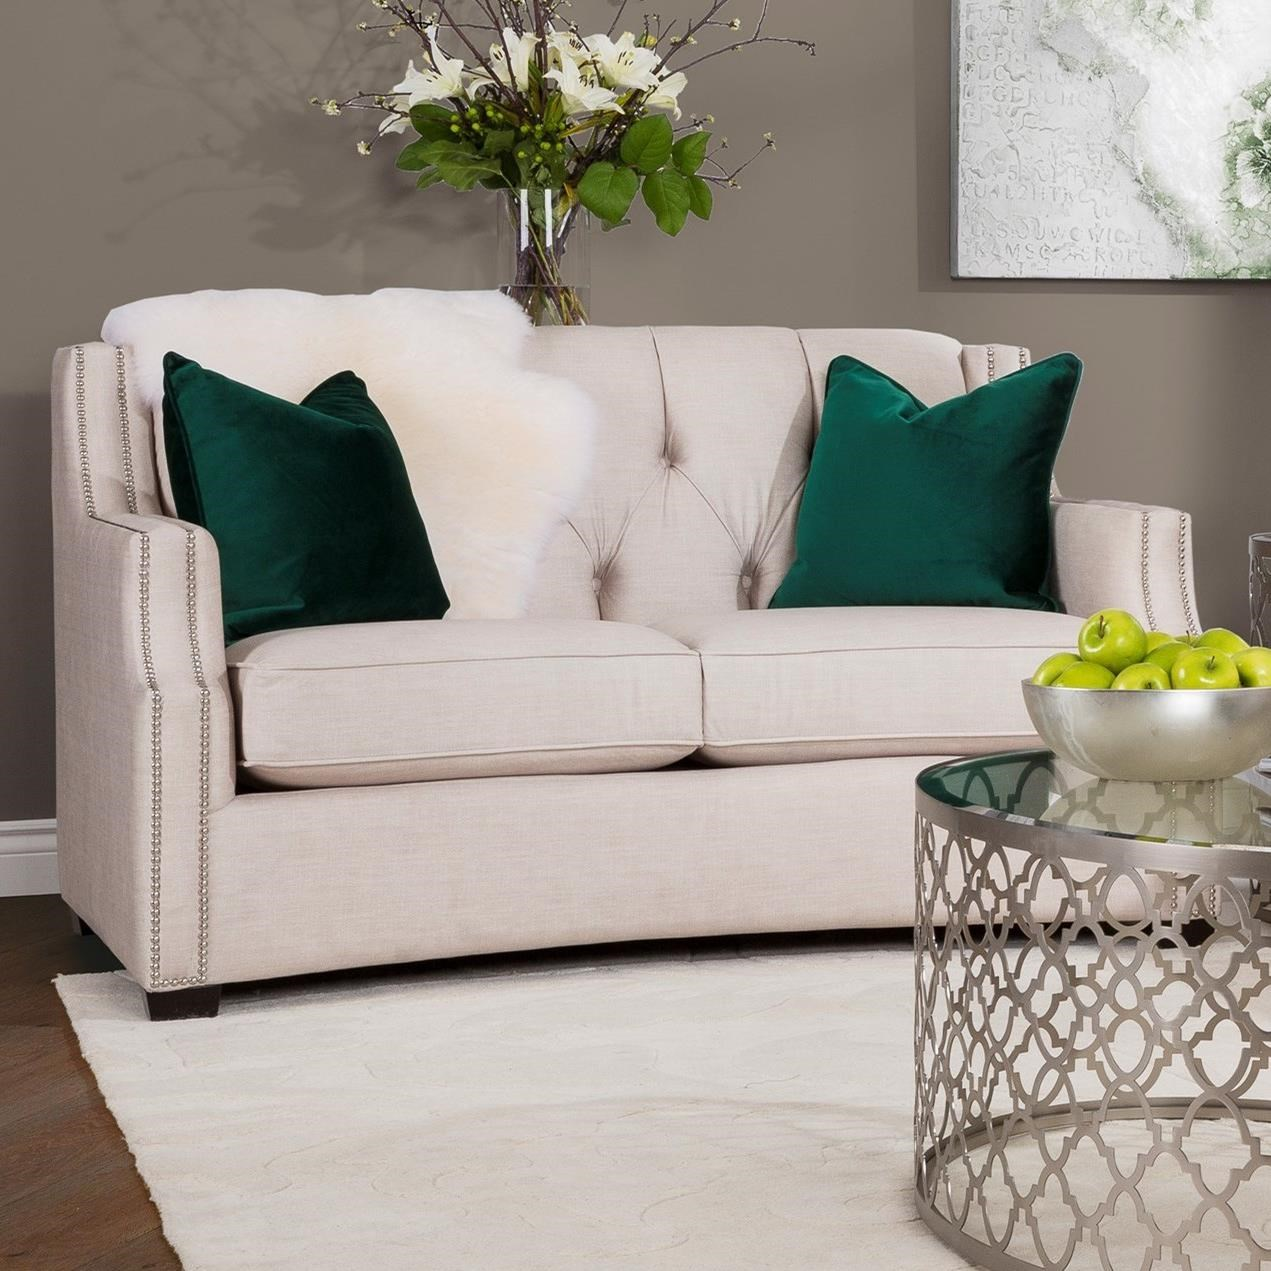 Decor Rest 2789 Transitional Tufted Loveseat With Scooped